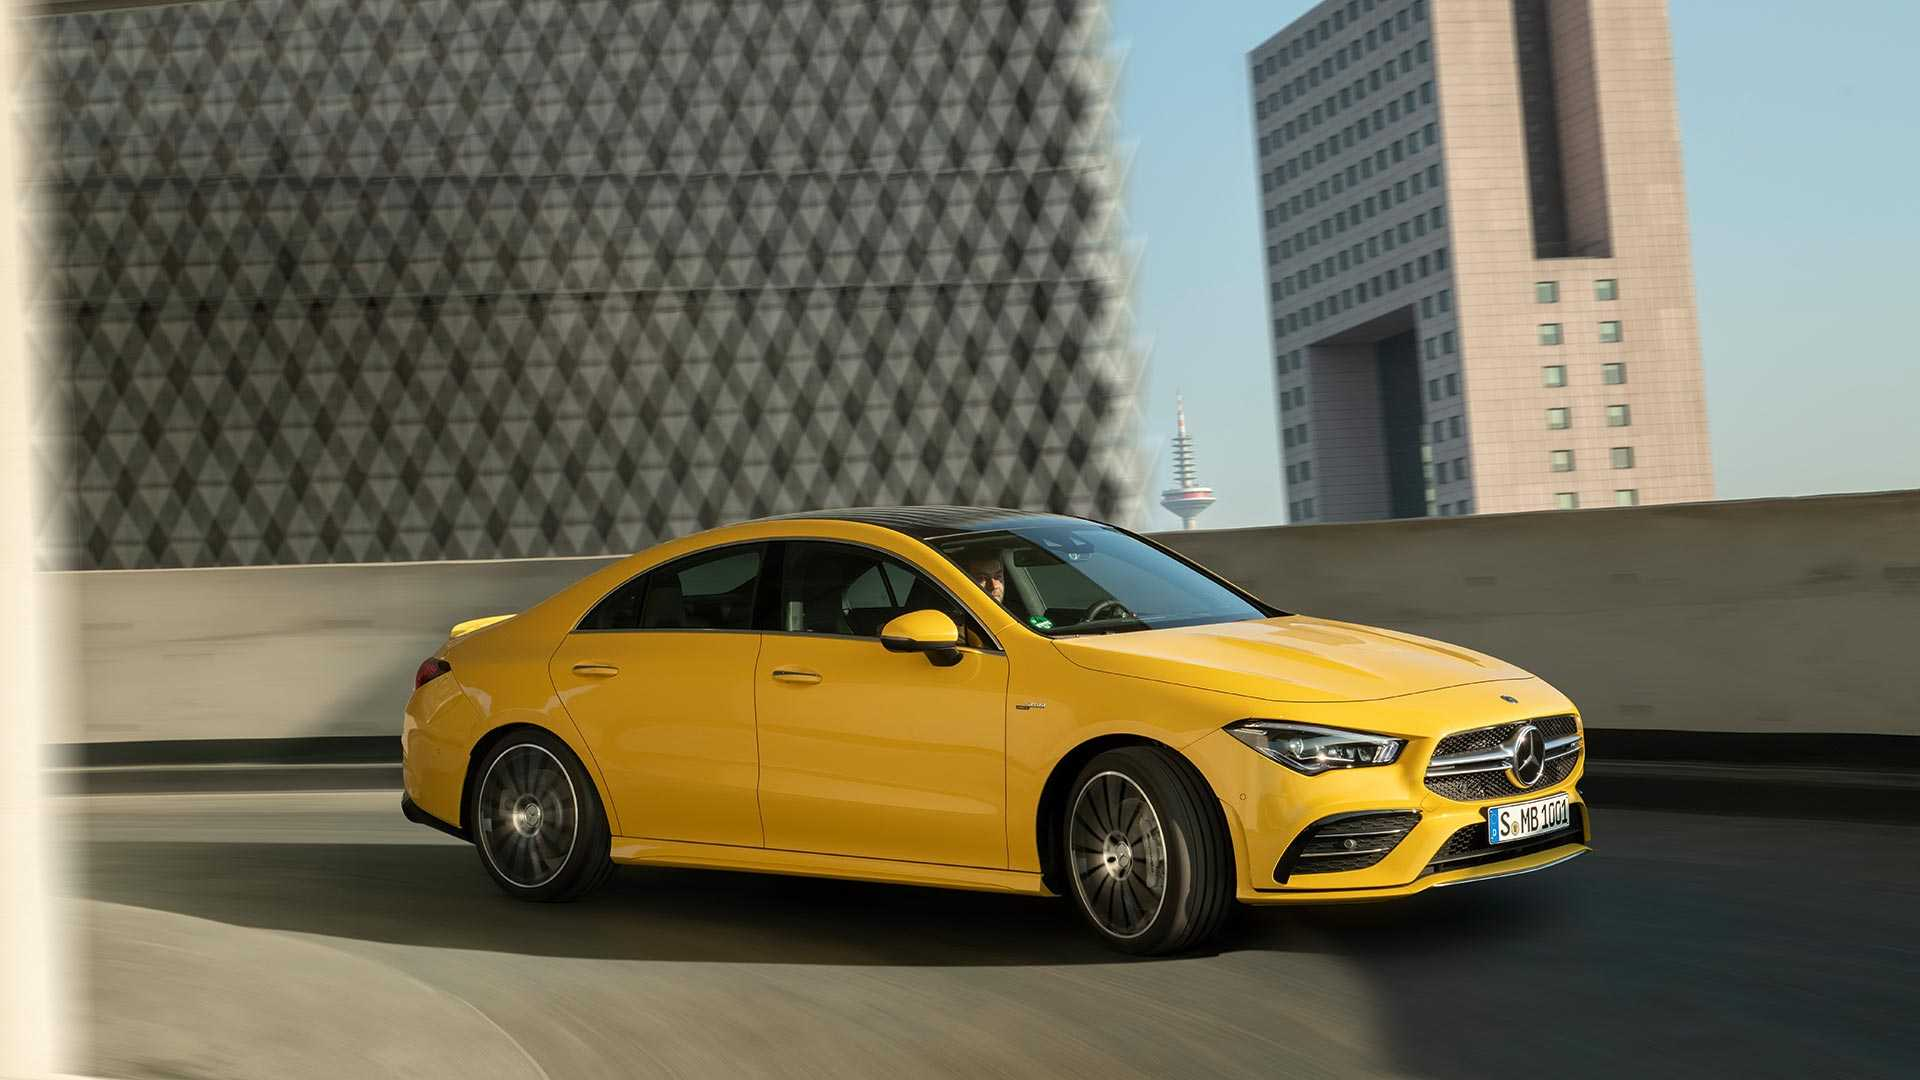 2020 Mercedes-AMG CLA 35 4MATIC (Color: Sun Yellow) Front Three-Quarter Wallpapers (2)